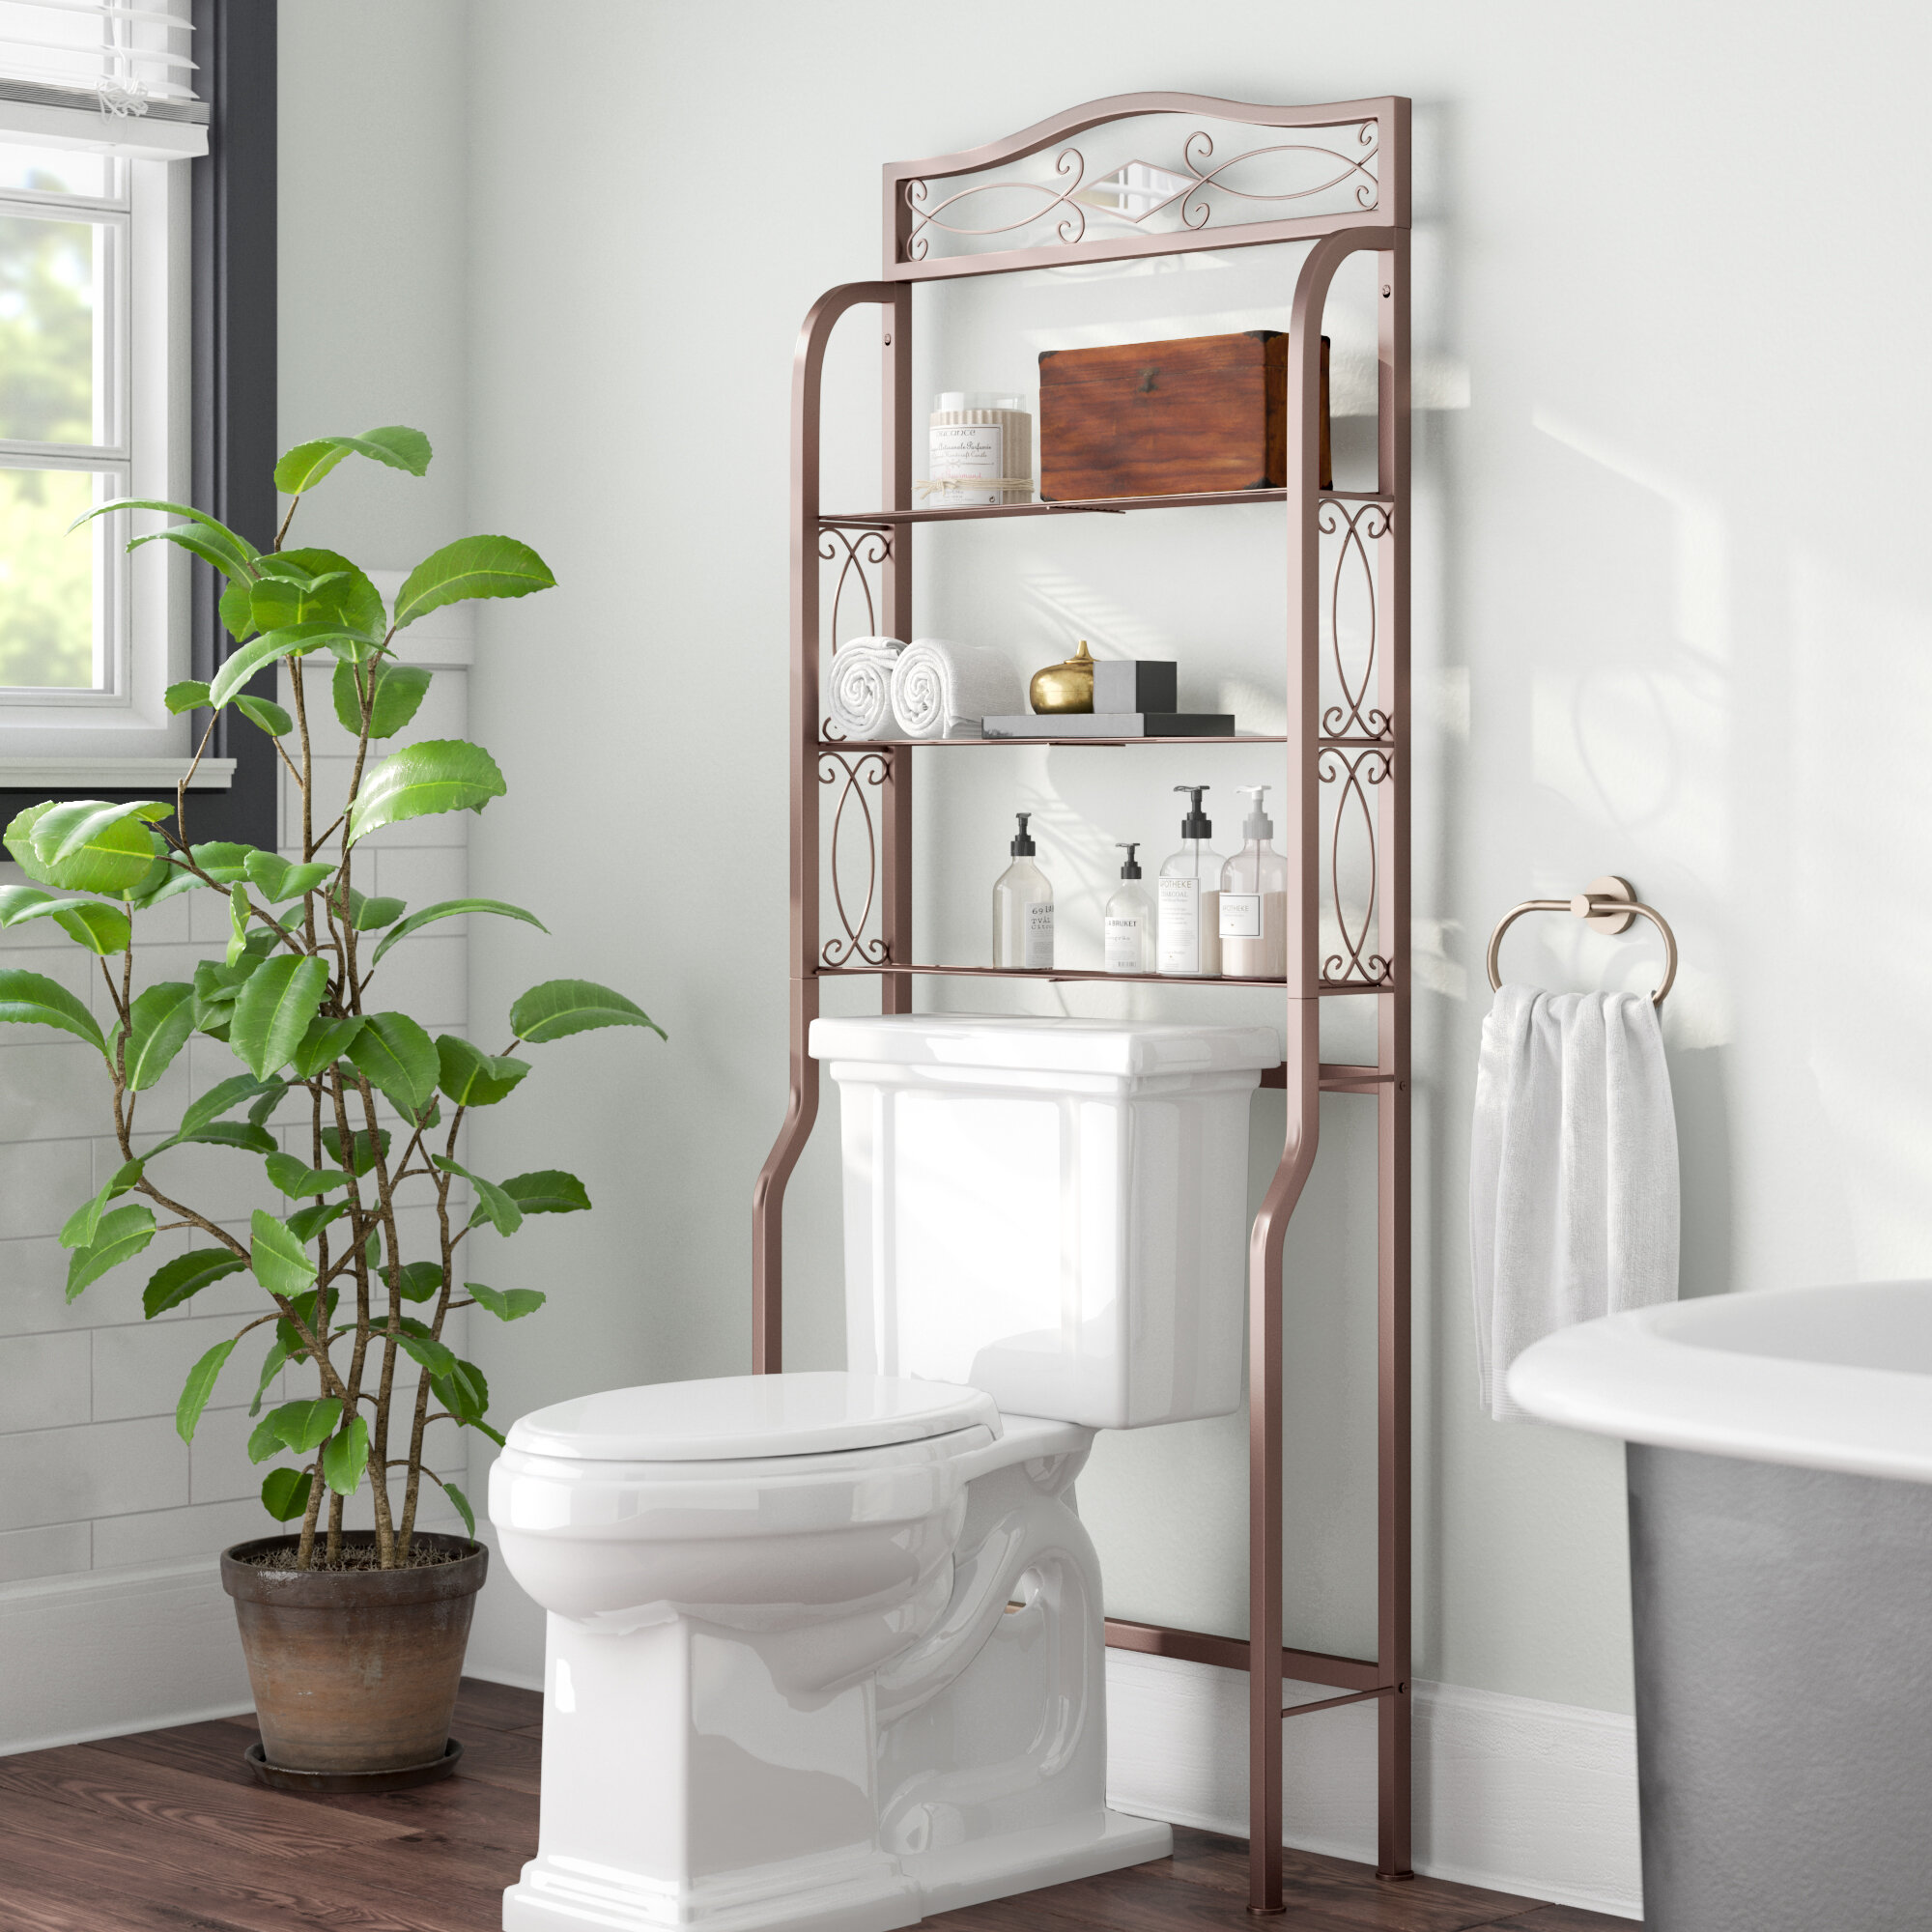 free collection shipping bathroom with overstock glass home today tier doors leighton product spacesaver garden